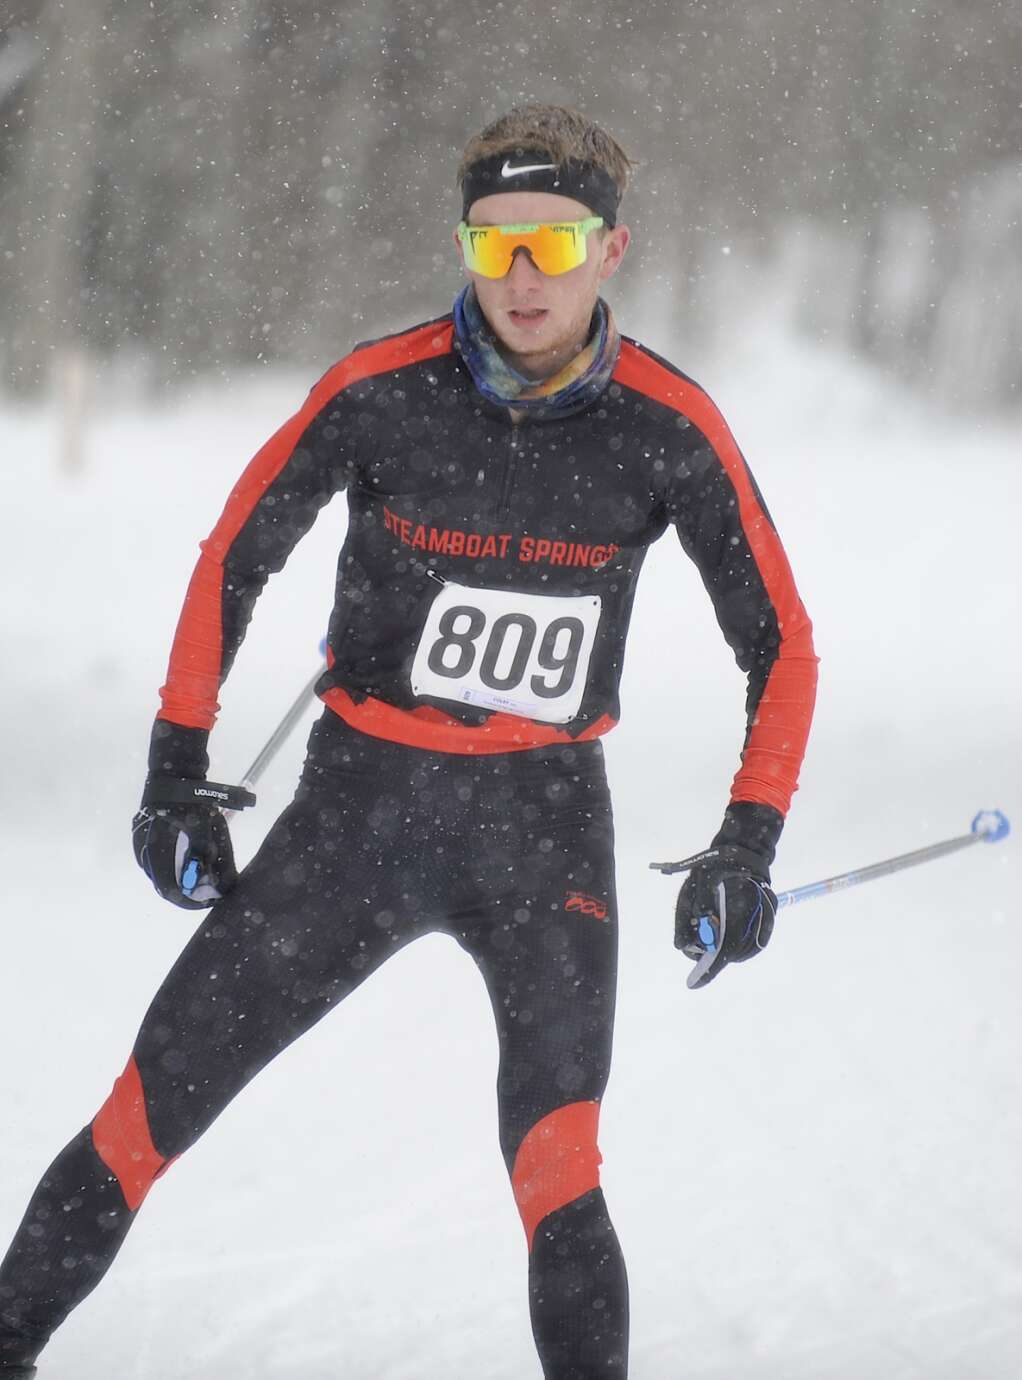 Steamboat Springs Nordic skier Alex Colby finished third during a home race at the Steamboat Ski Touring Center on Friday afternoon. (Photo by Shelby Reardon)